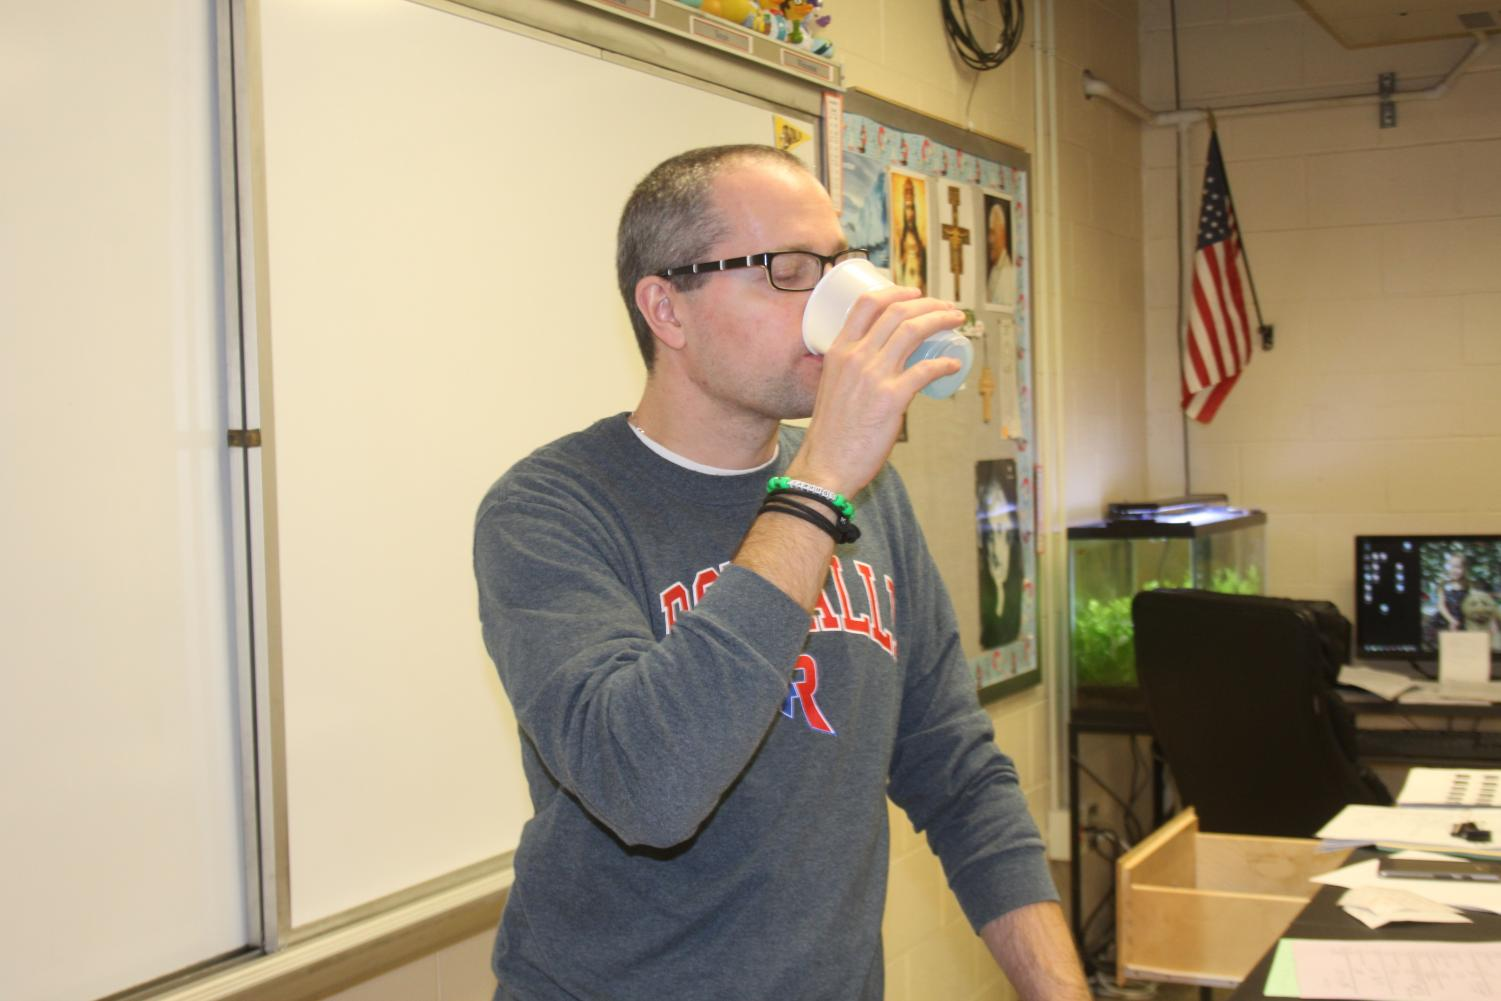 MMMM TASTY: Chemistry teacher Ben North drinks the remaining gulps of original Windex spray cleaner. North drinks approximately two gallons of the savory blue raspberry cleaner each week.